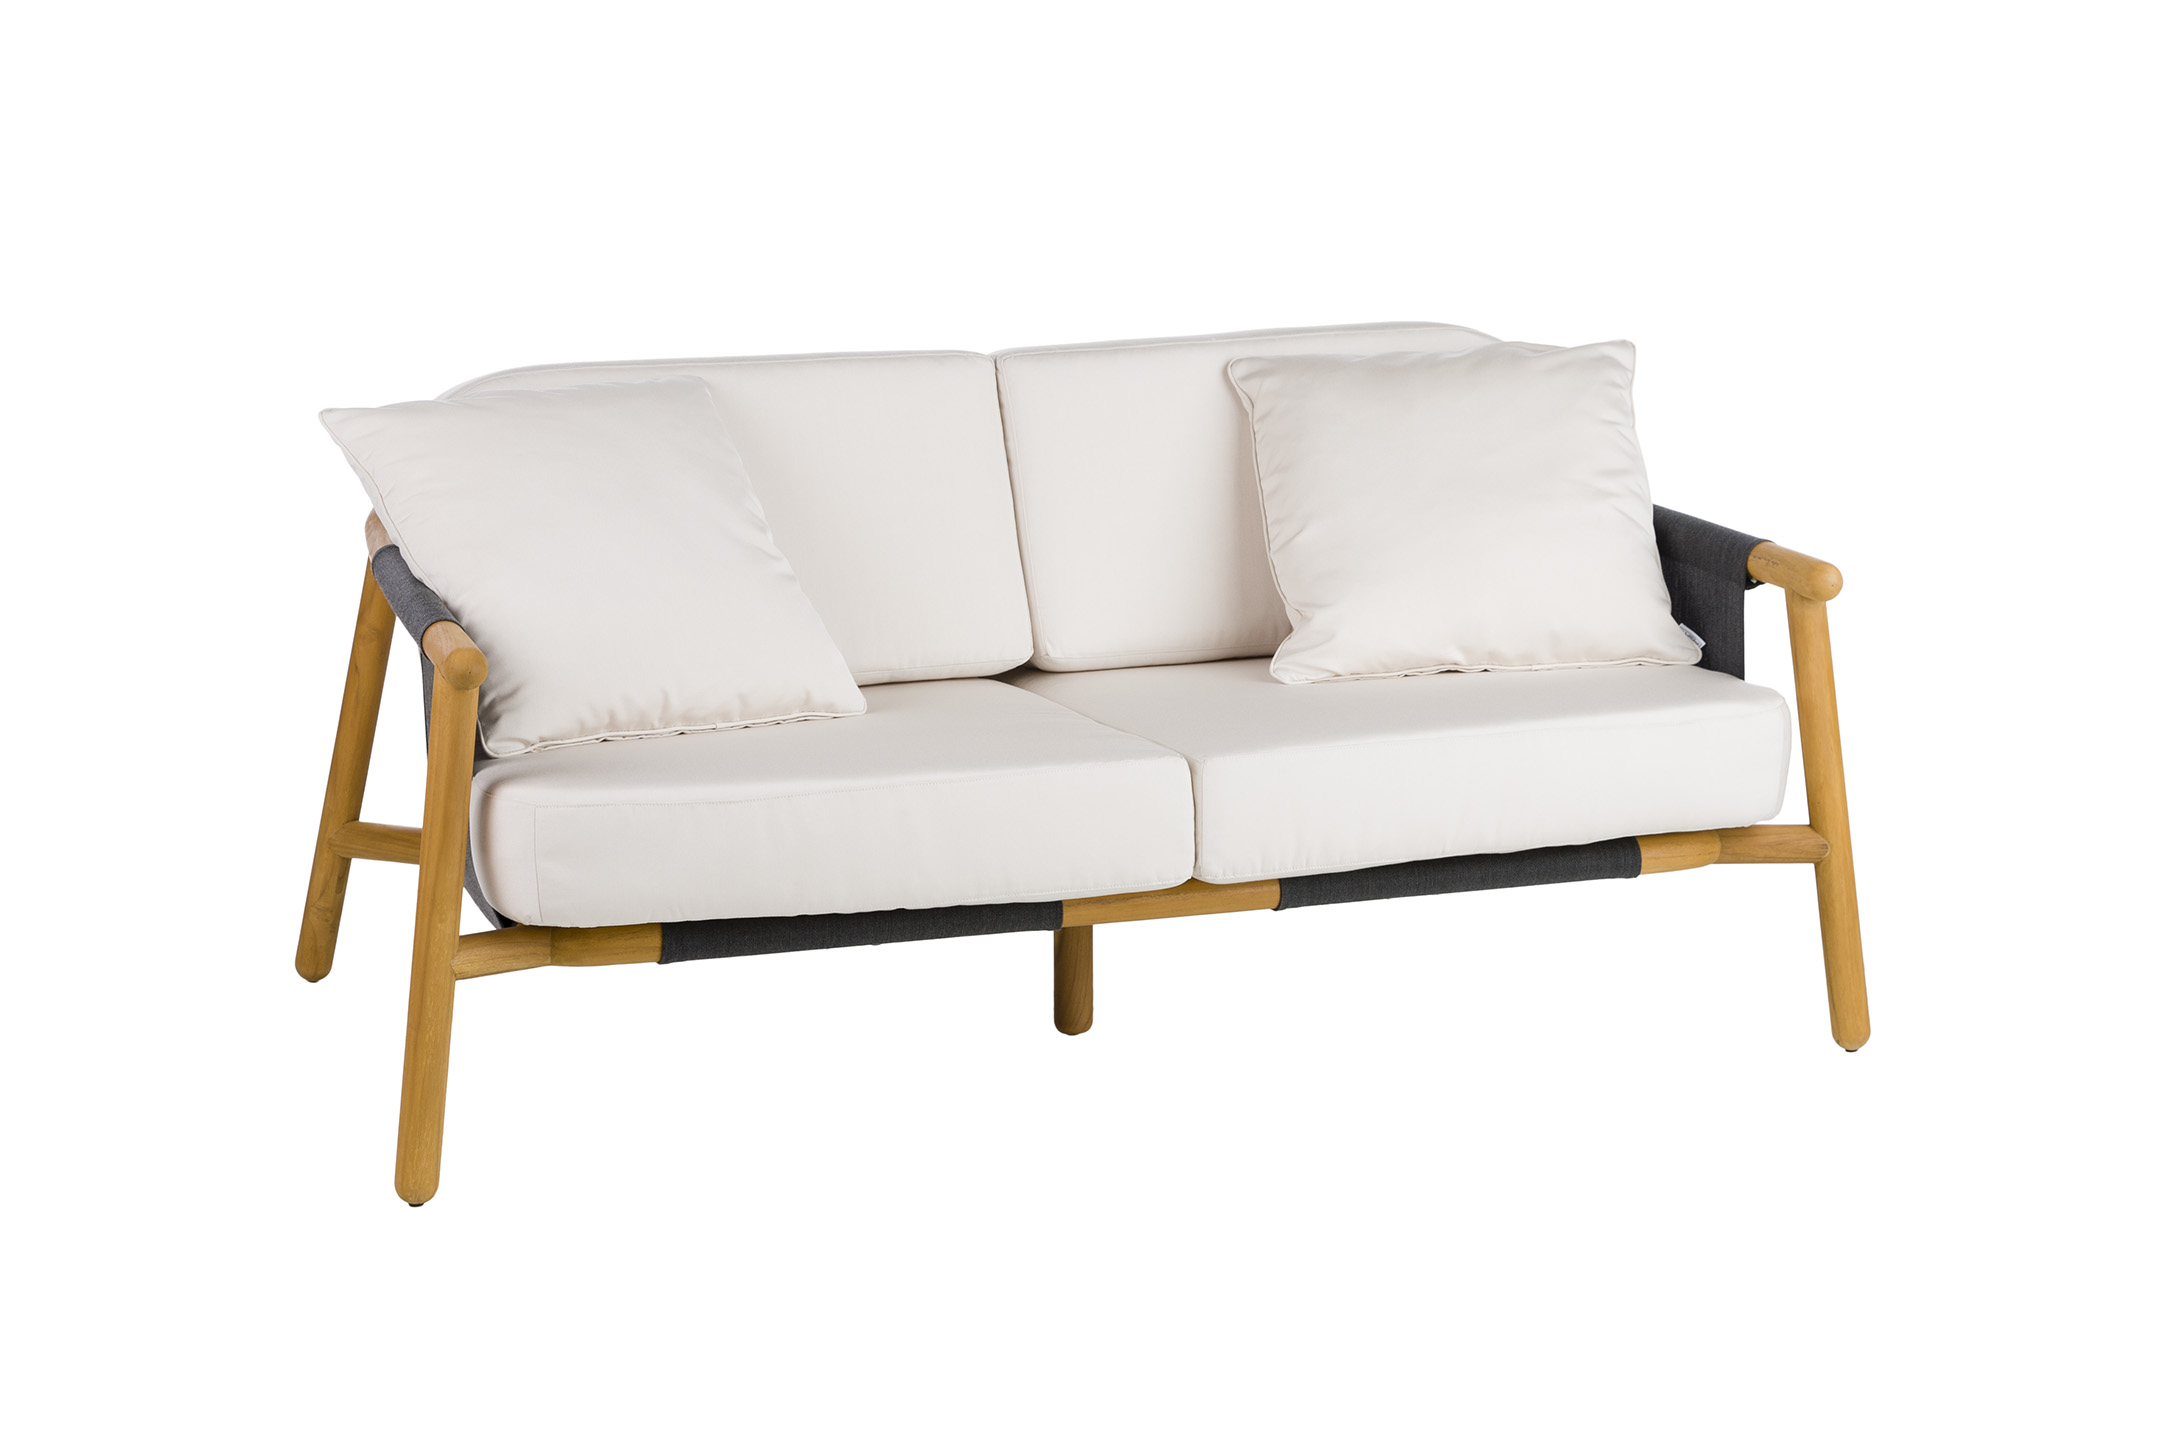 Adele 2 seater sofa couture outdoor for 2 seater chaise sofa for sale